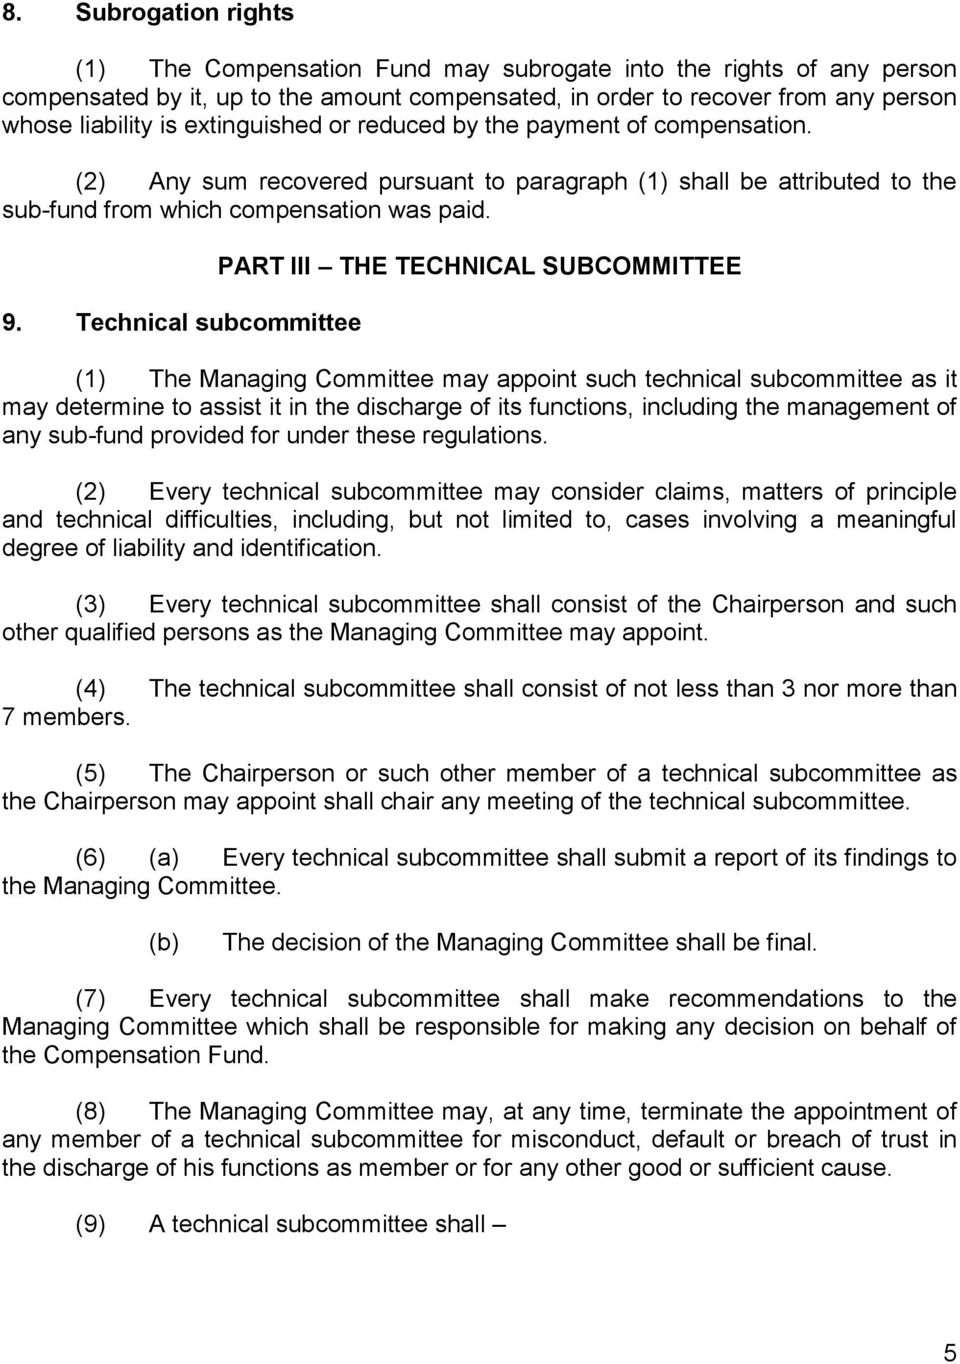 Technical subcommittee PART III THE TECHNICAL SUBCOMMITTEE (1) The Managing Committee may appoint such technical subcommittee as it may determine to assist it in the discharge of its functions,